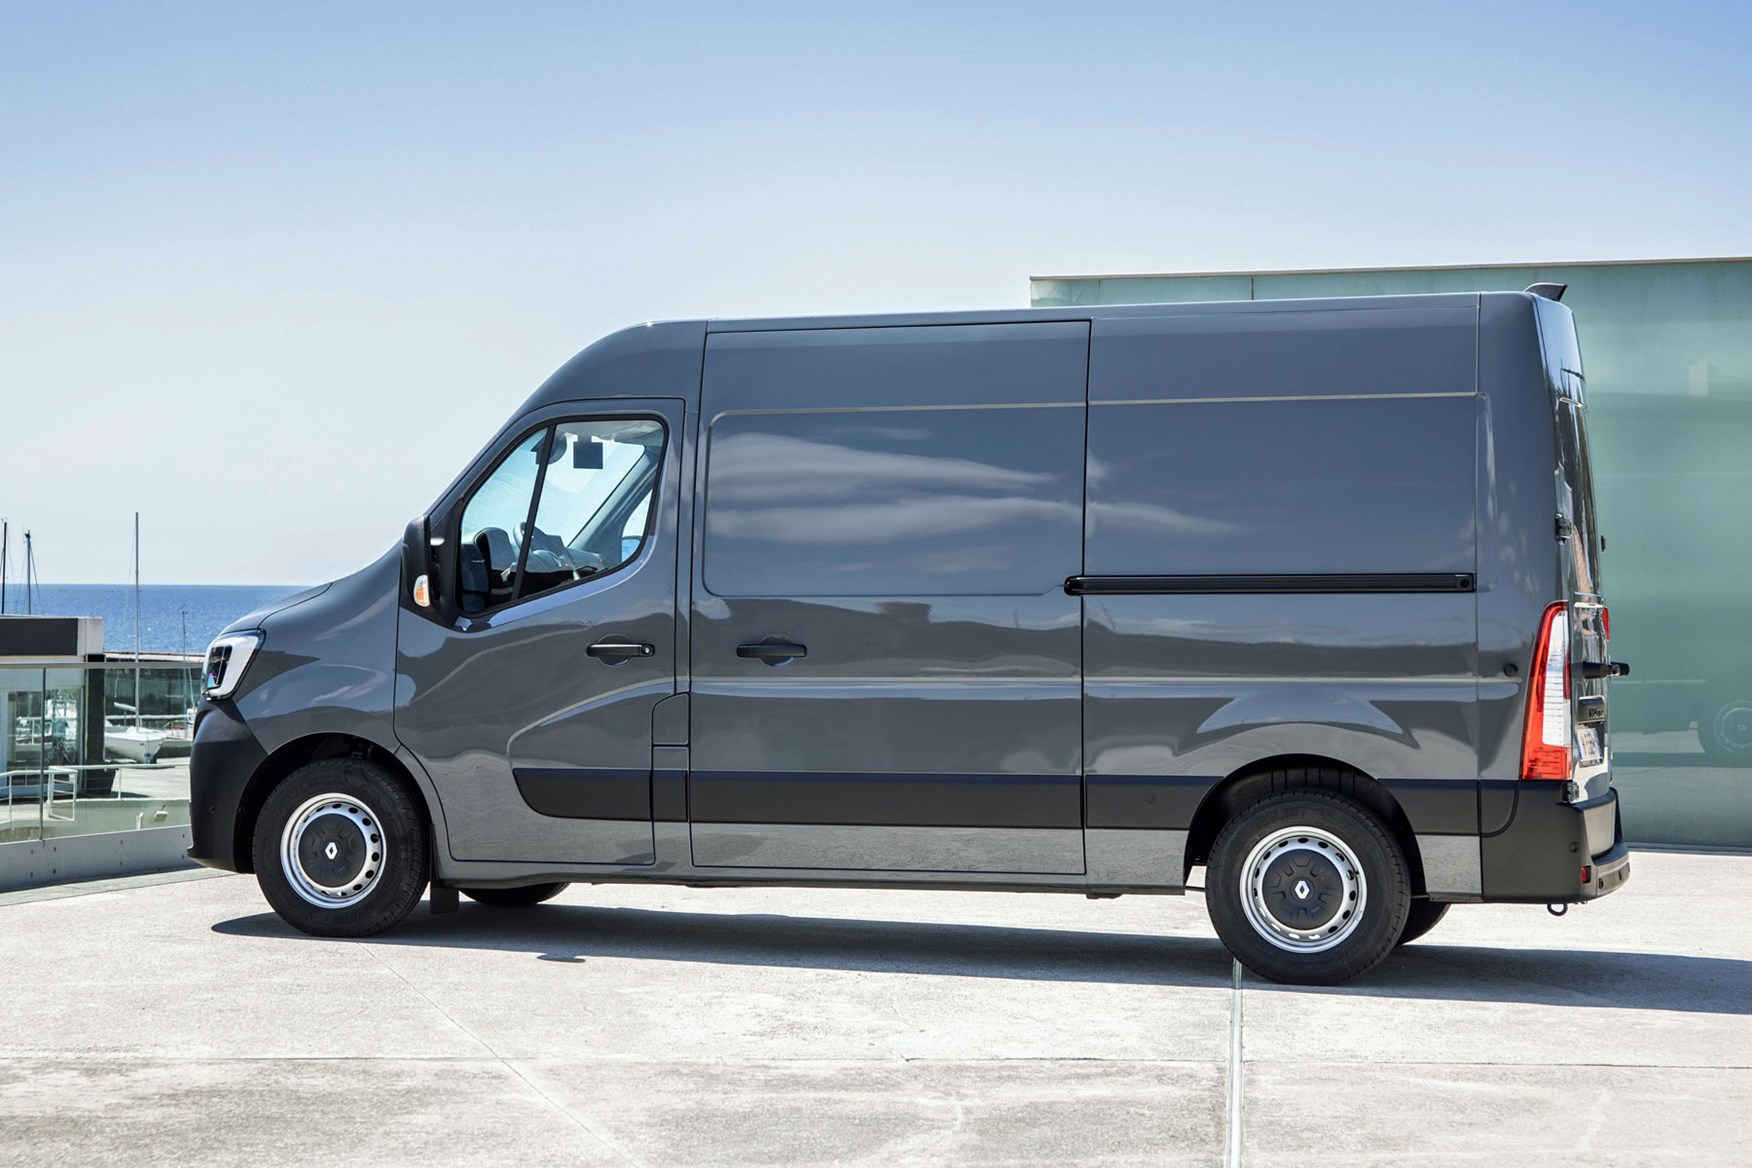 Renault Master review - 2019  facelift model, rear side view, grey